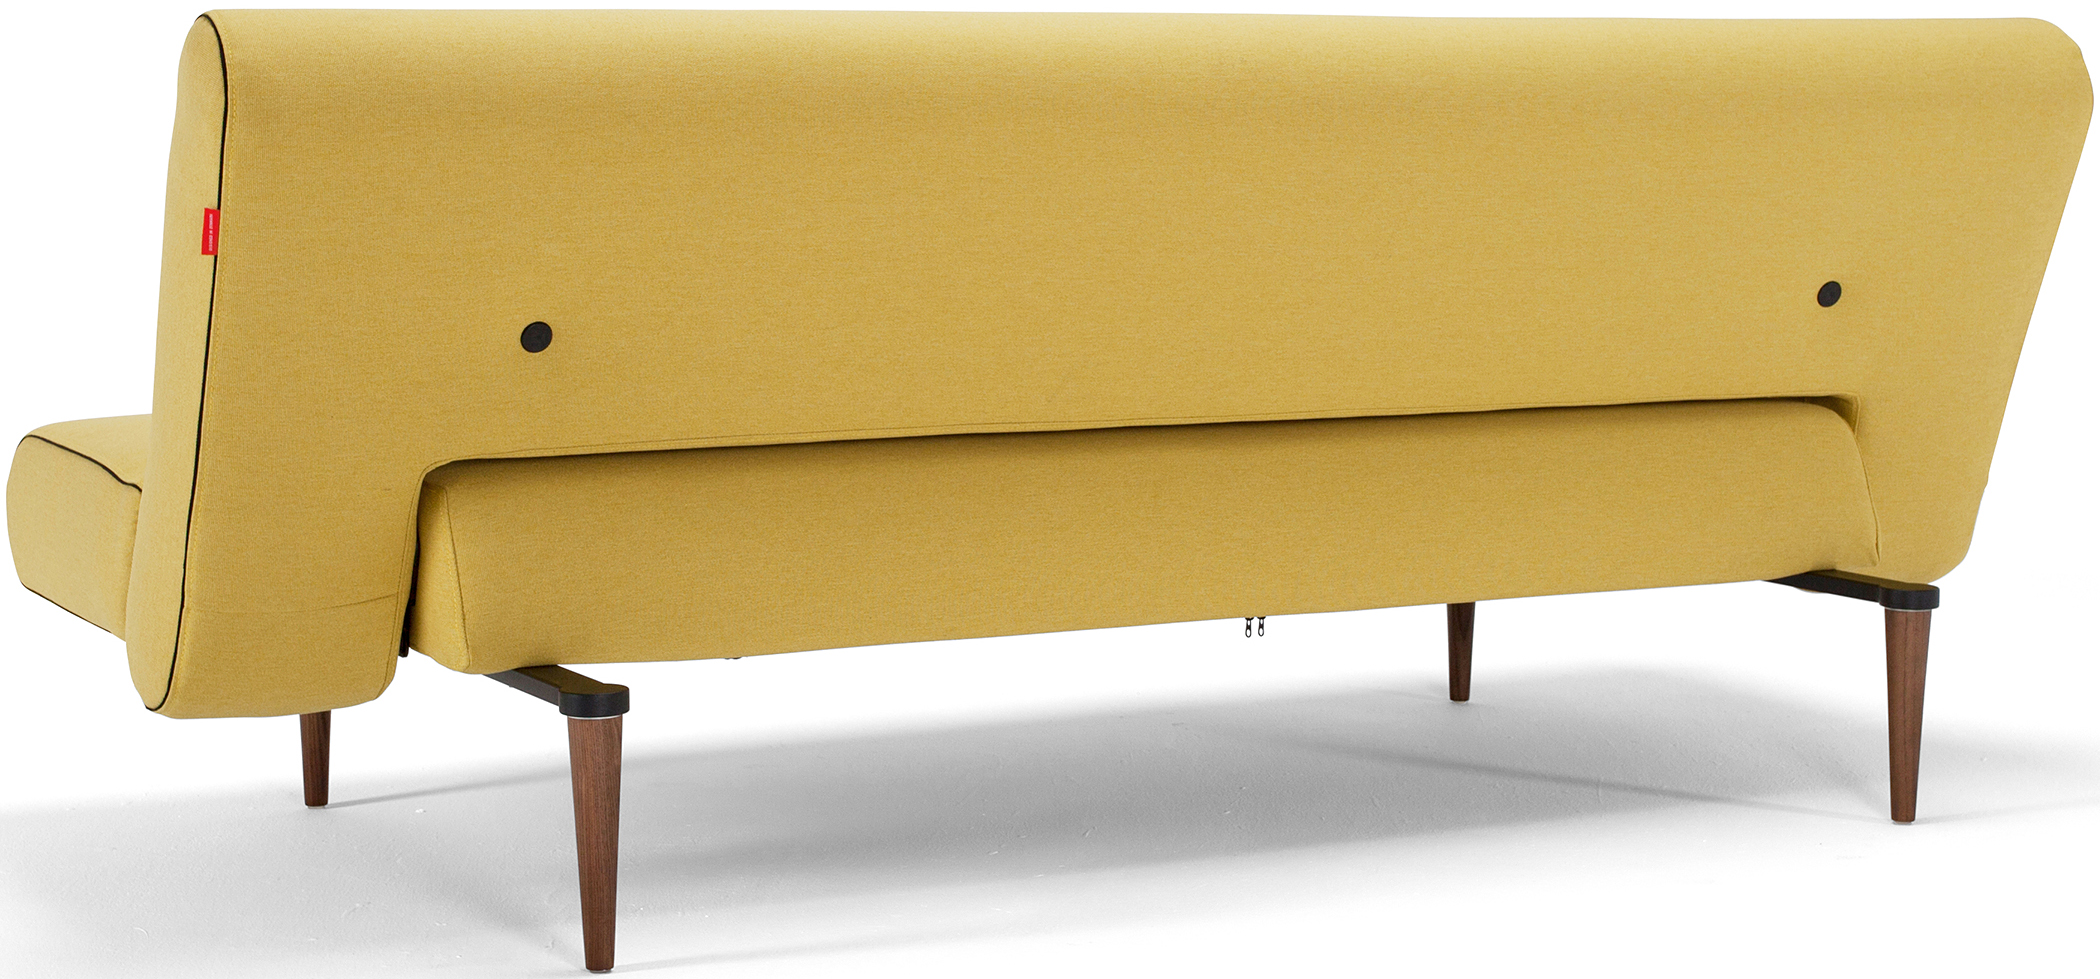 unfurl sofa bed mustard yellow